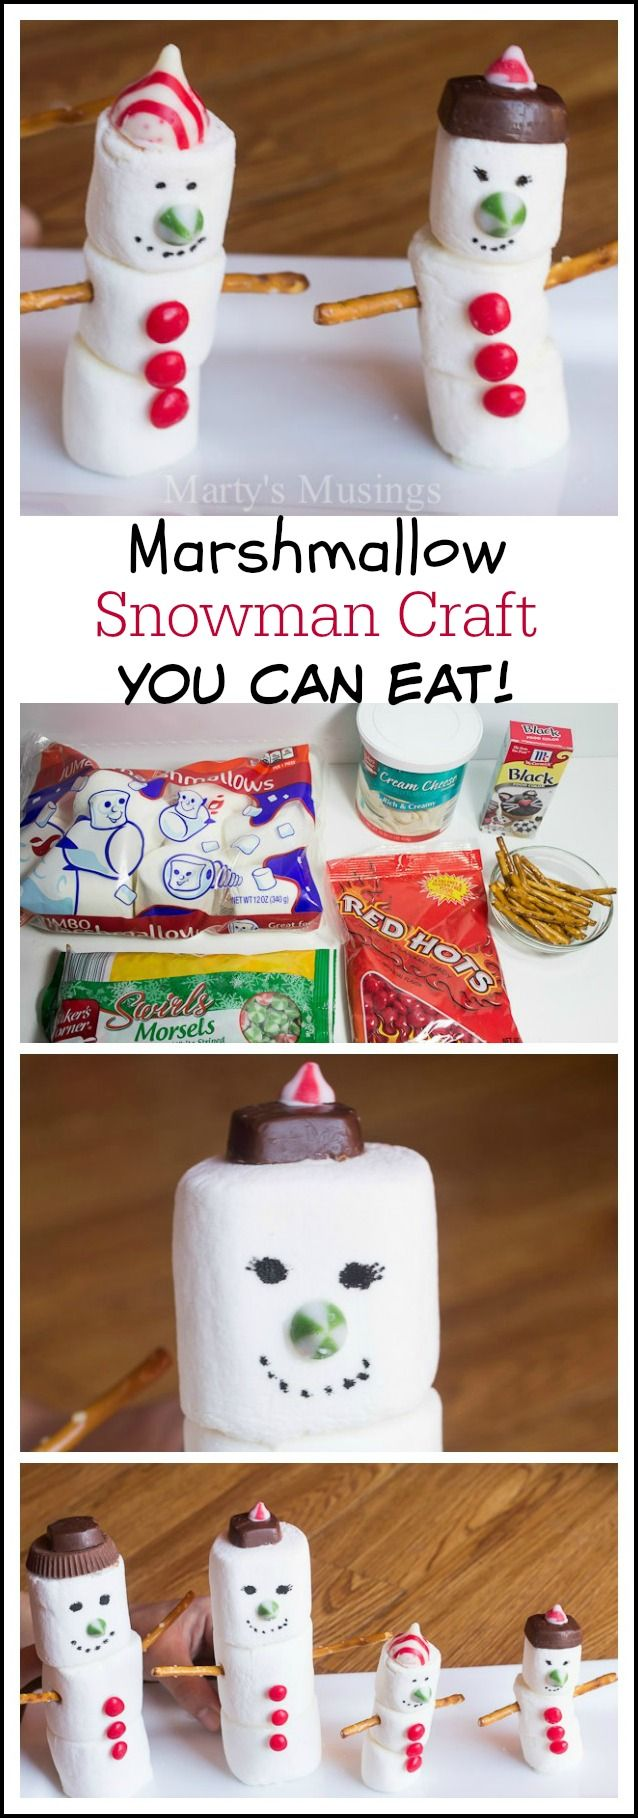 Your kids will love this marshmallow snowman craft that is even more fun to eat! Great activity for snow days and long winter days at home!